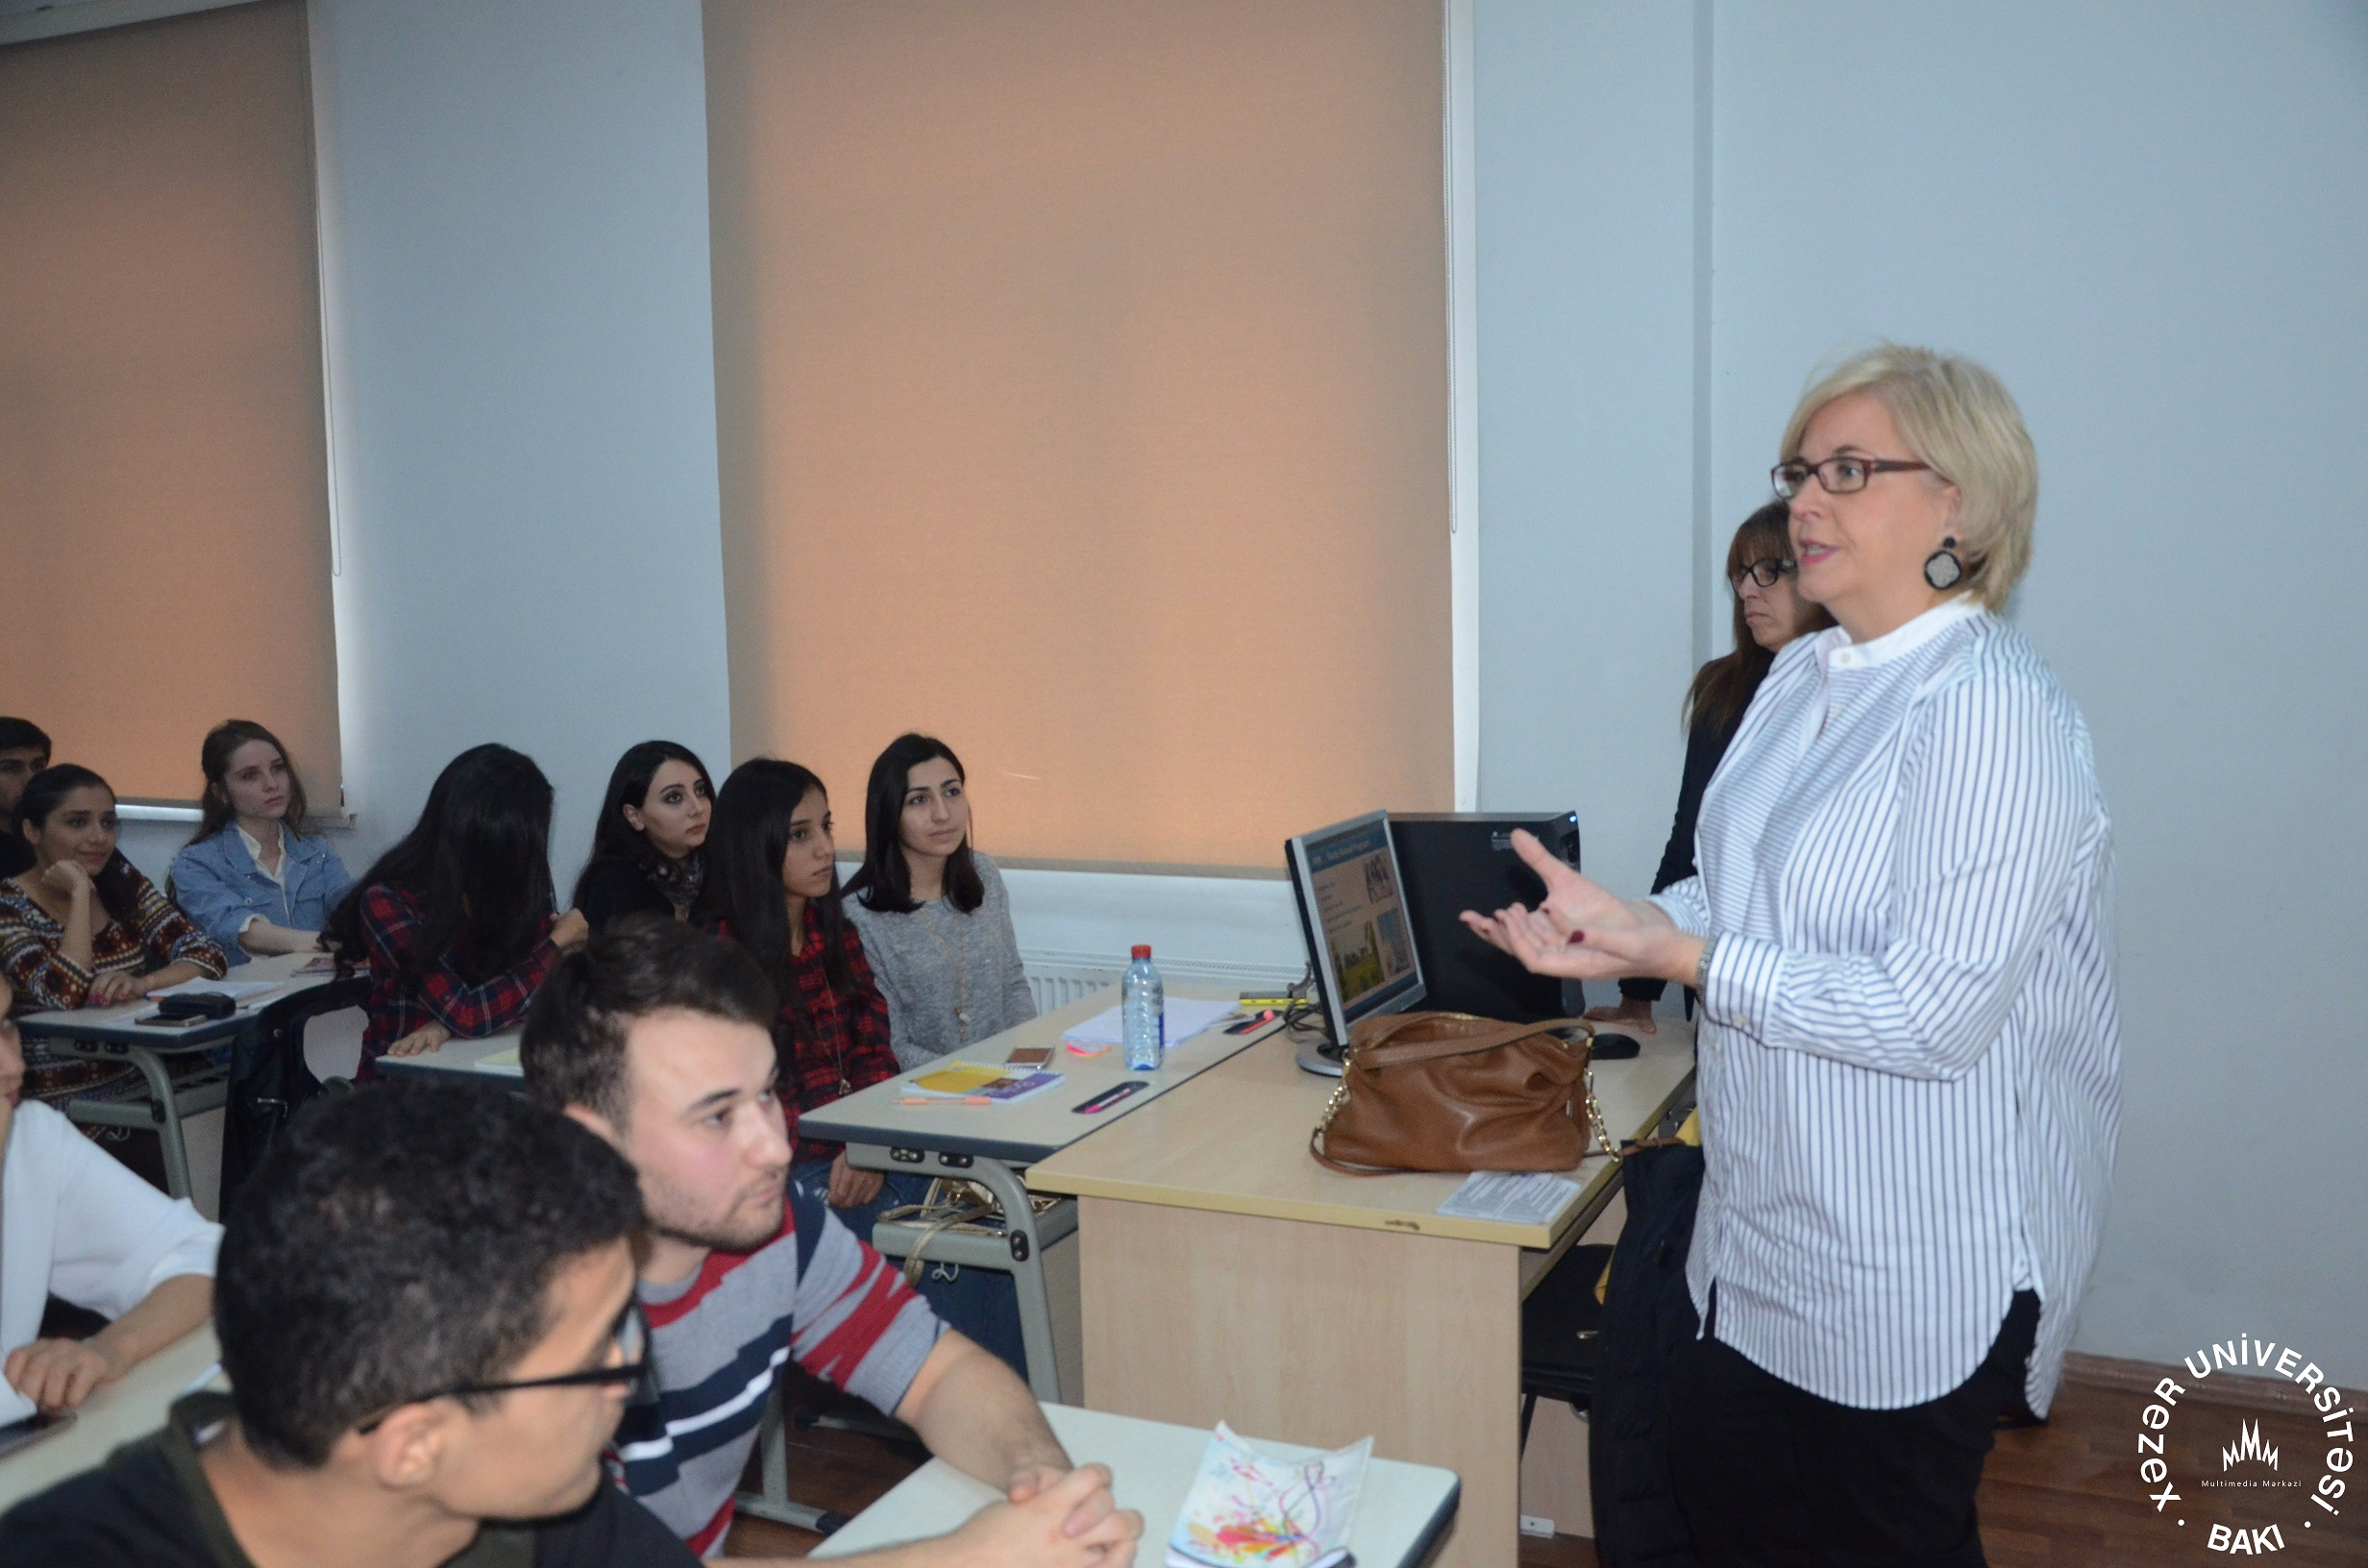 Meeting with CEFAM, International School of Business and Management – Lyon and USA